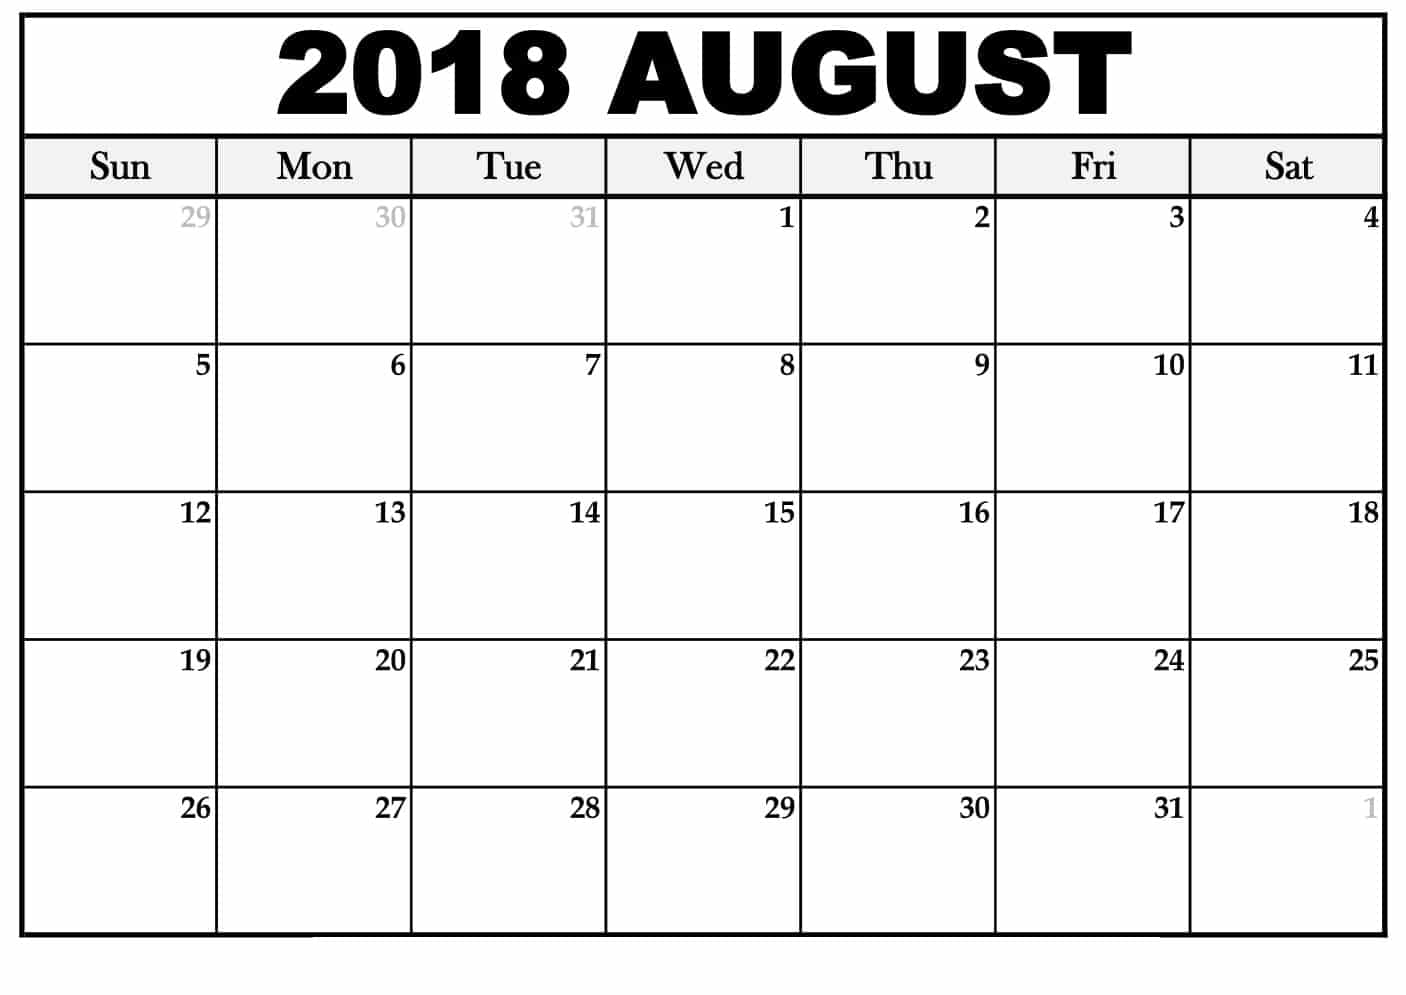 August Calendar 2018 Template Desk Free Hd Images